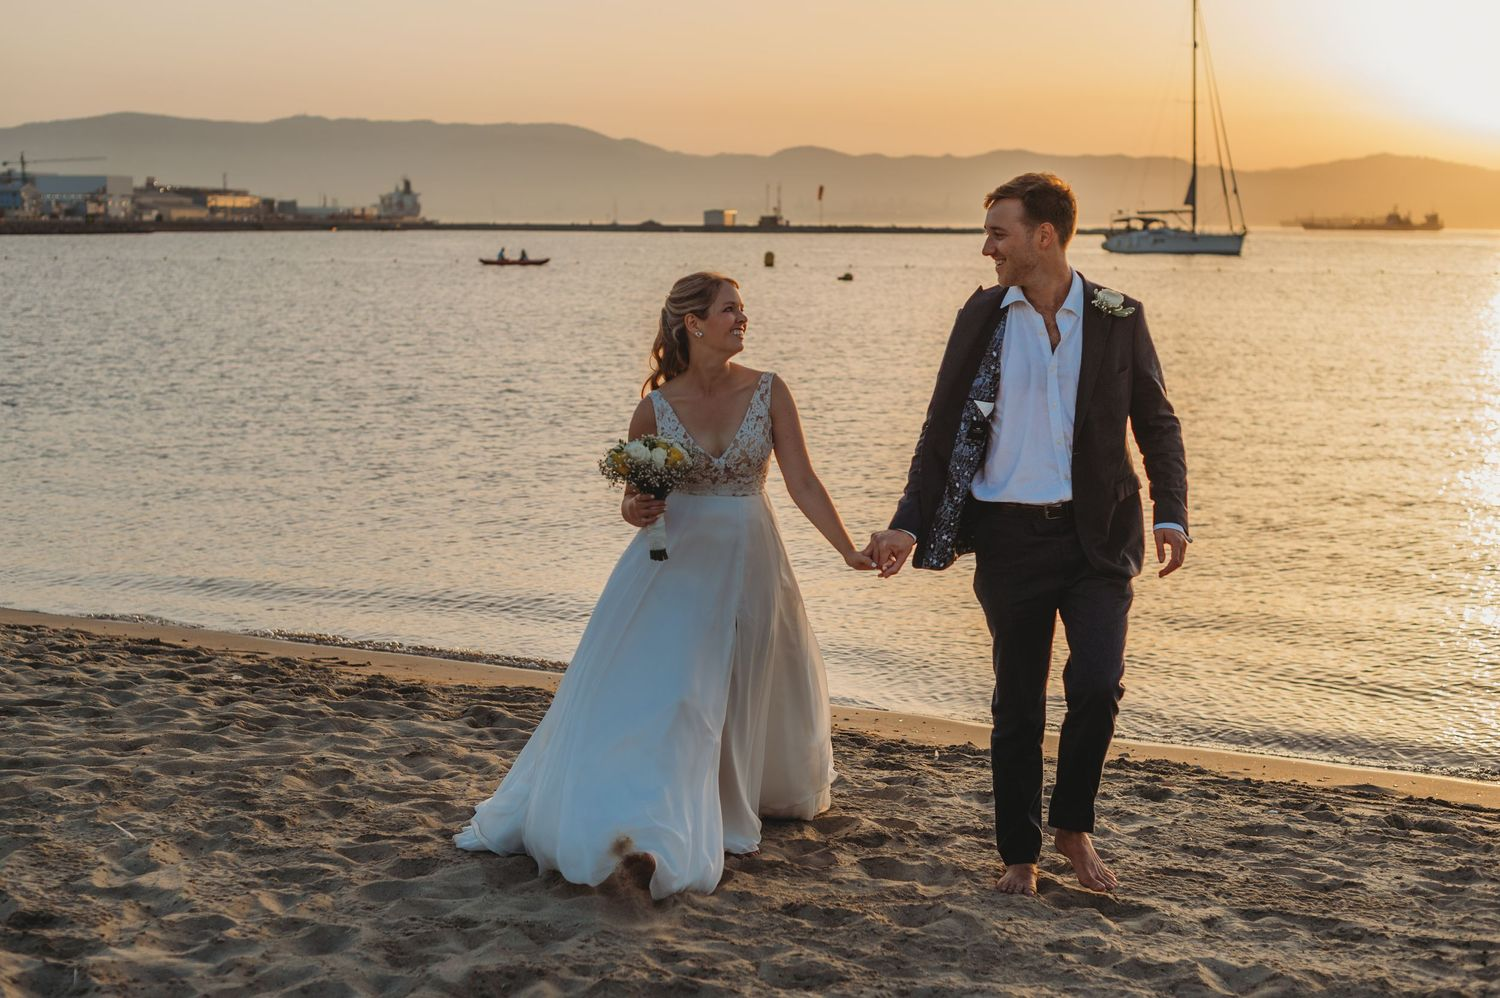 Groom and bride walking on beach in Gibraltar